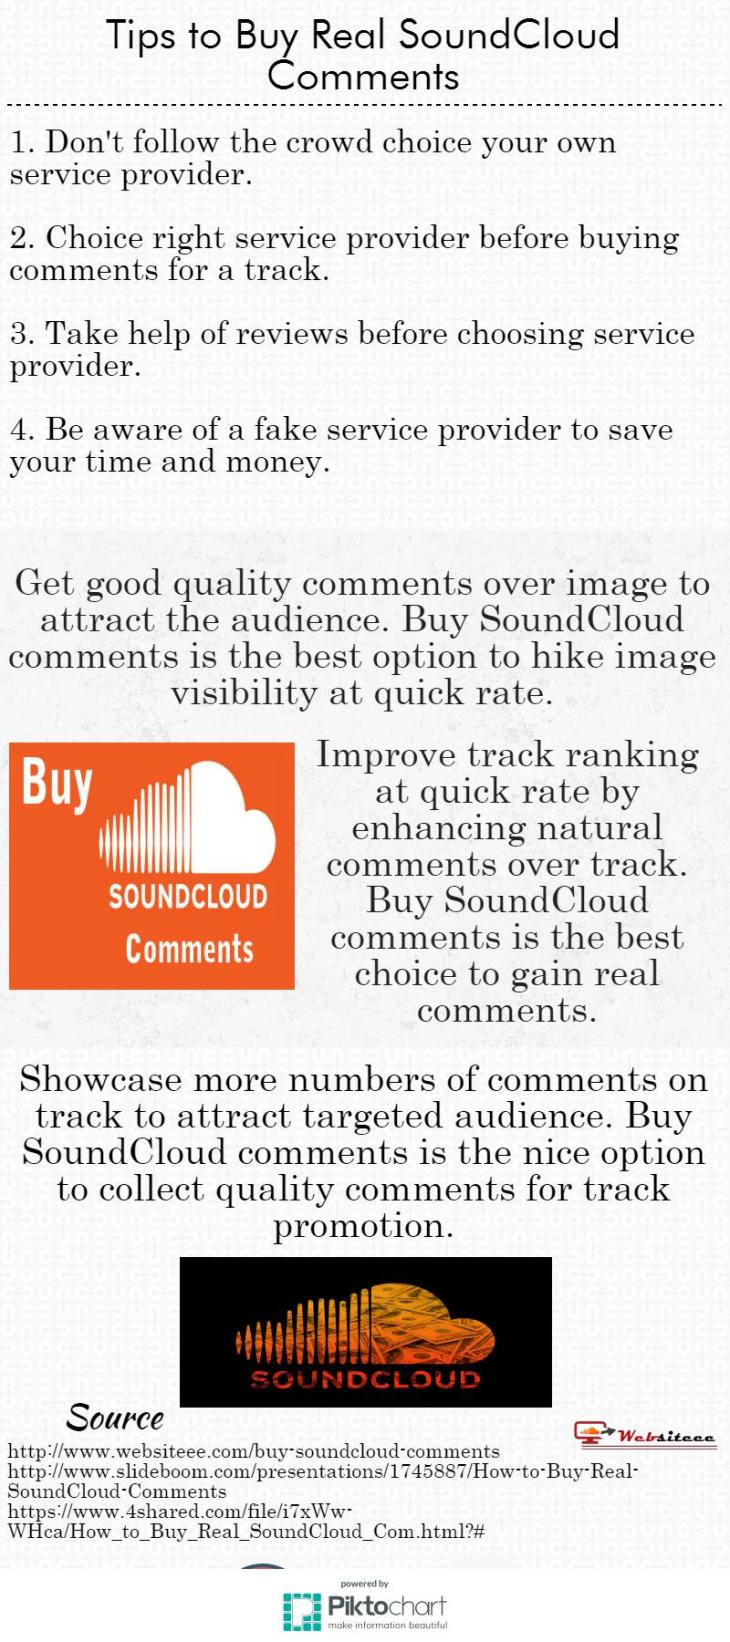 Tips to Buy Real SoundCloud Comments